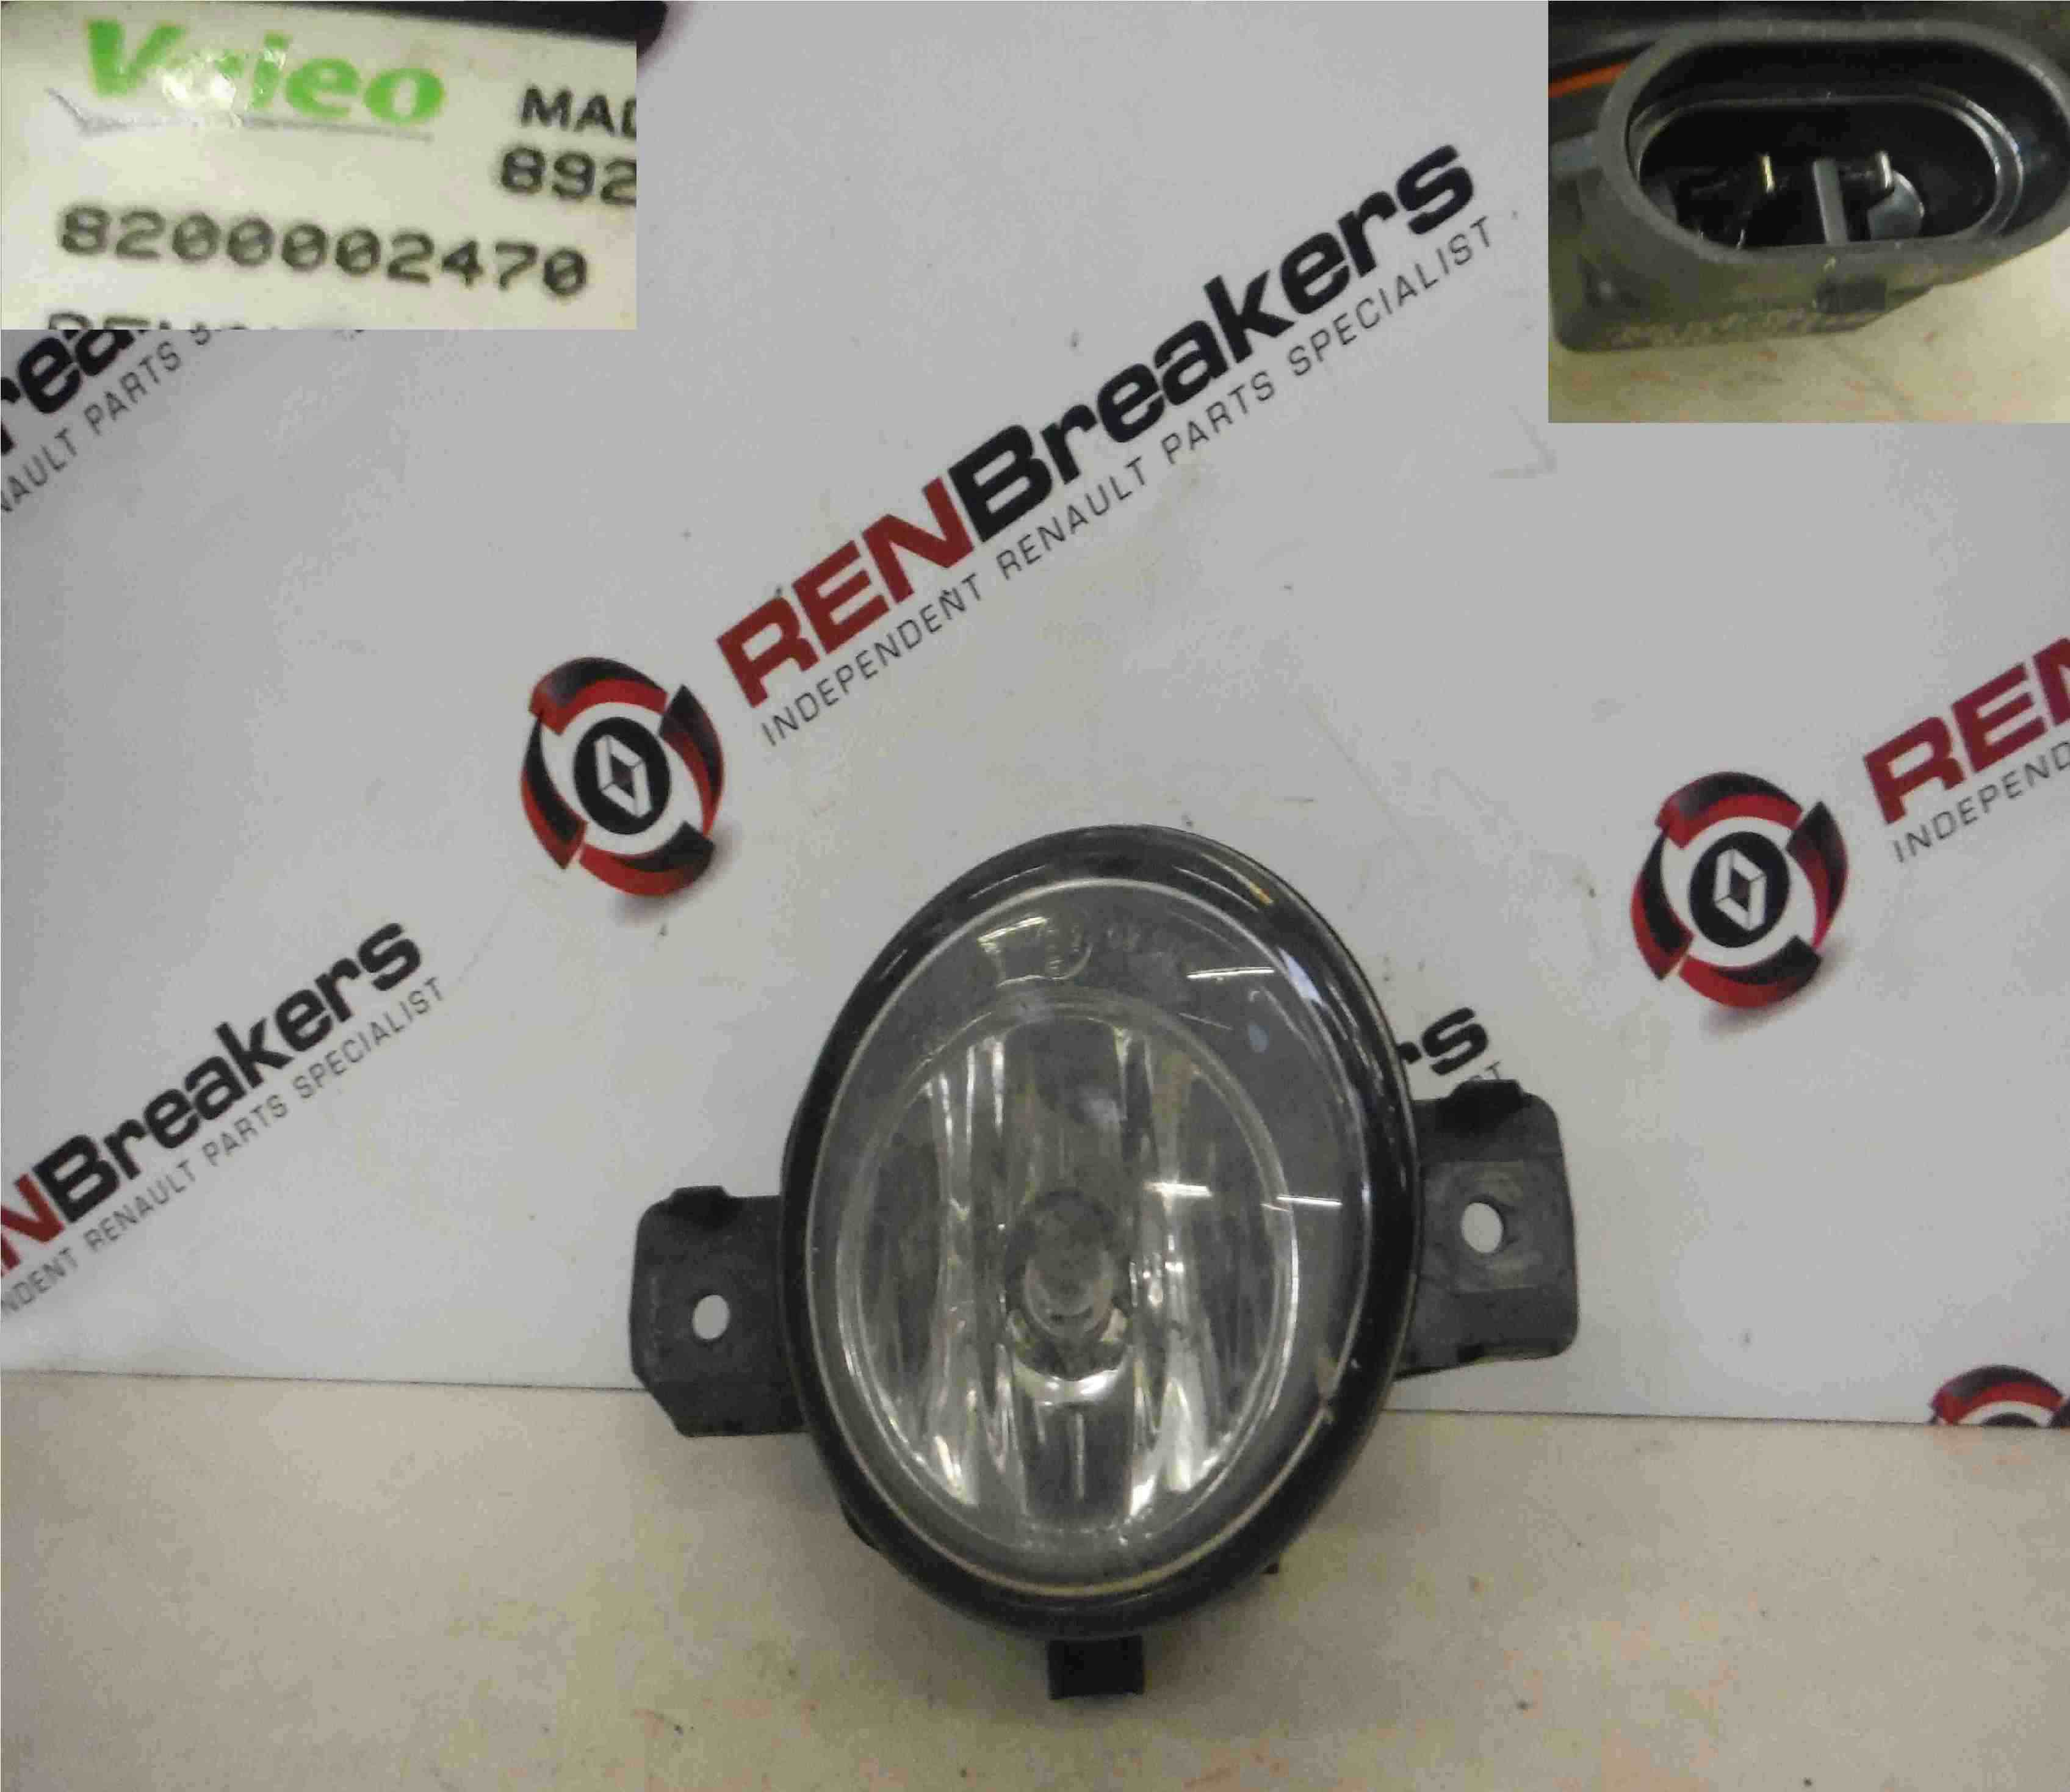 Renault Clio MK3 2005-2012 Drivers OSF Front Fog Light Lens 8200002470